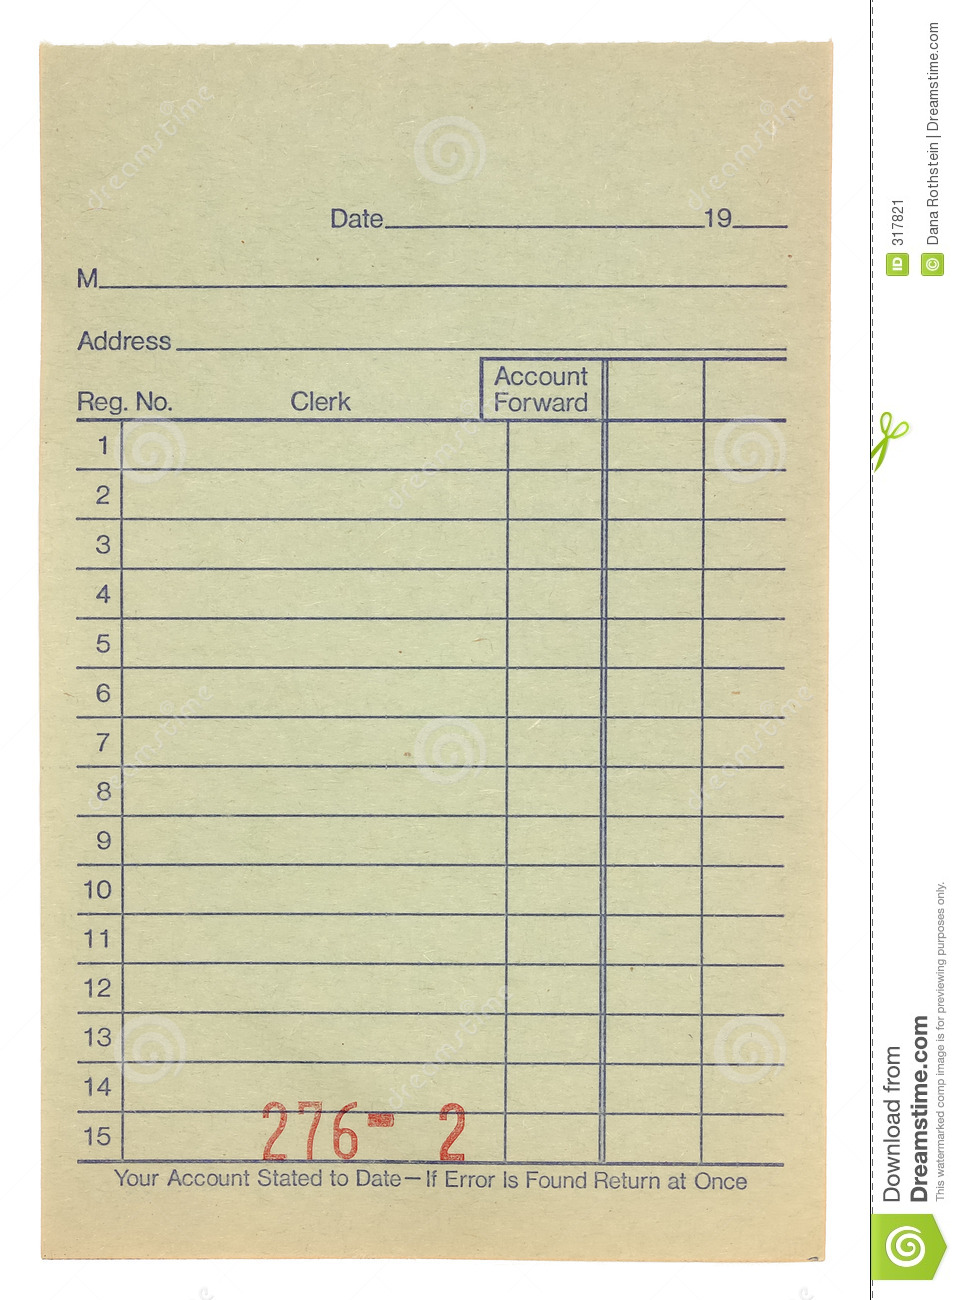 Receipt stock image. Image of bill, receipt, paper, page - 317821